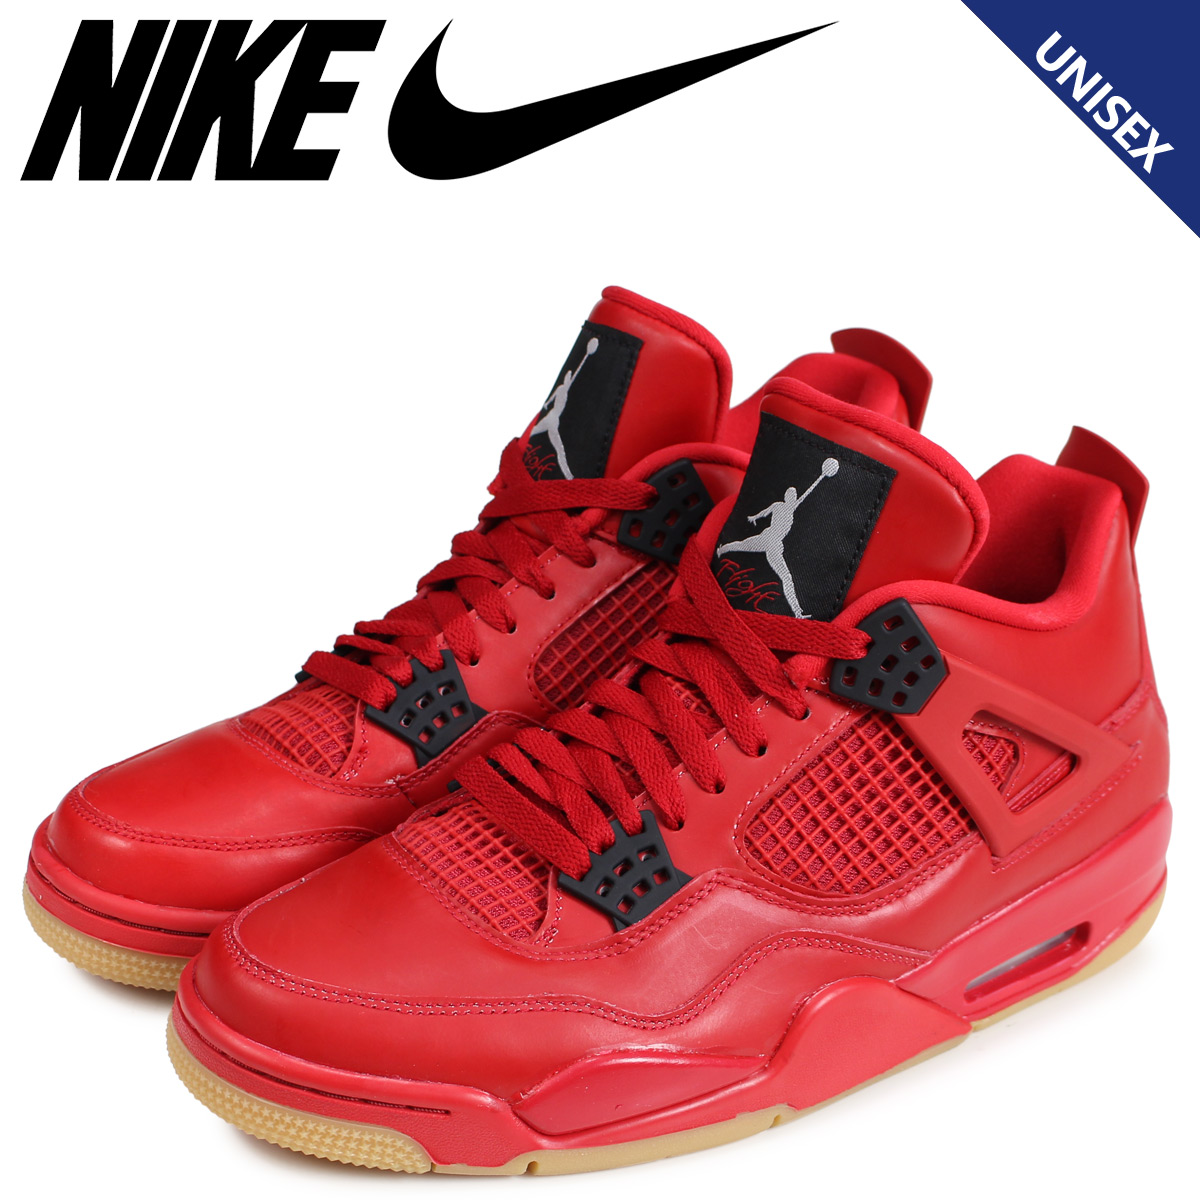 3ffb5189bd4c NIKE Nike Air Jordan 4 nostalgic sneakers Lady s men WMNS AIR JORDAN 4  RETRO NRG SINGLES DAY red AV3914-600  load planned Shinnyu load in  reservation ...